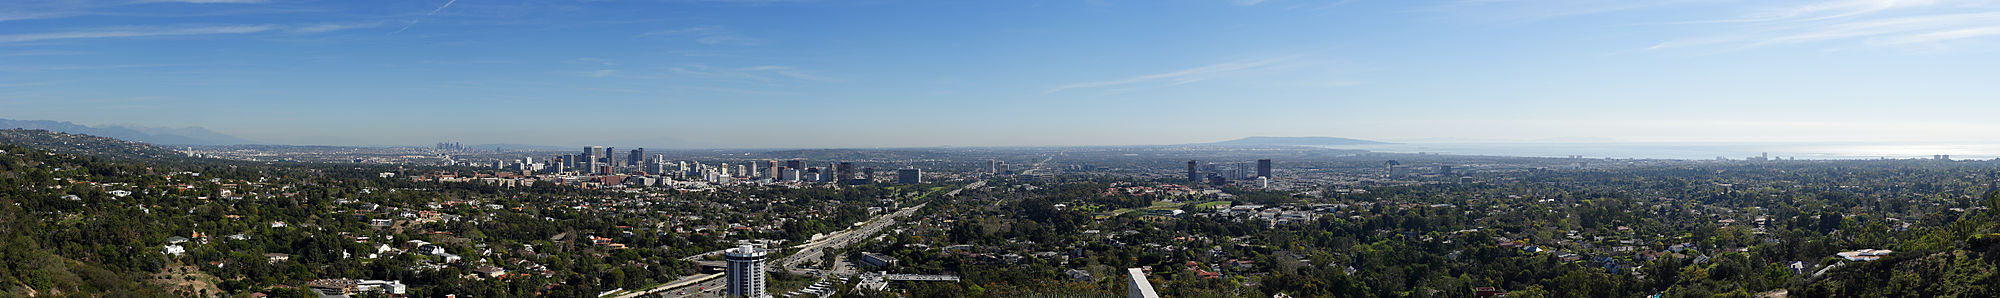 The near 180 degree panoramic view of Los Angeles looking south from the Getty on an exceptionally clear day. The 405 freeway intersects the view